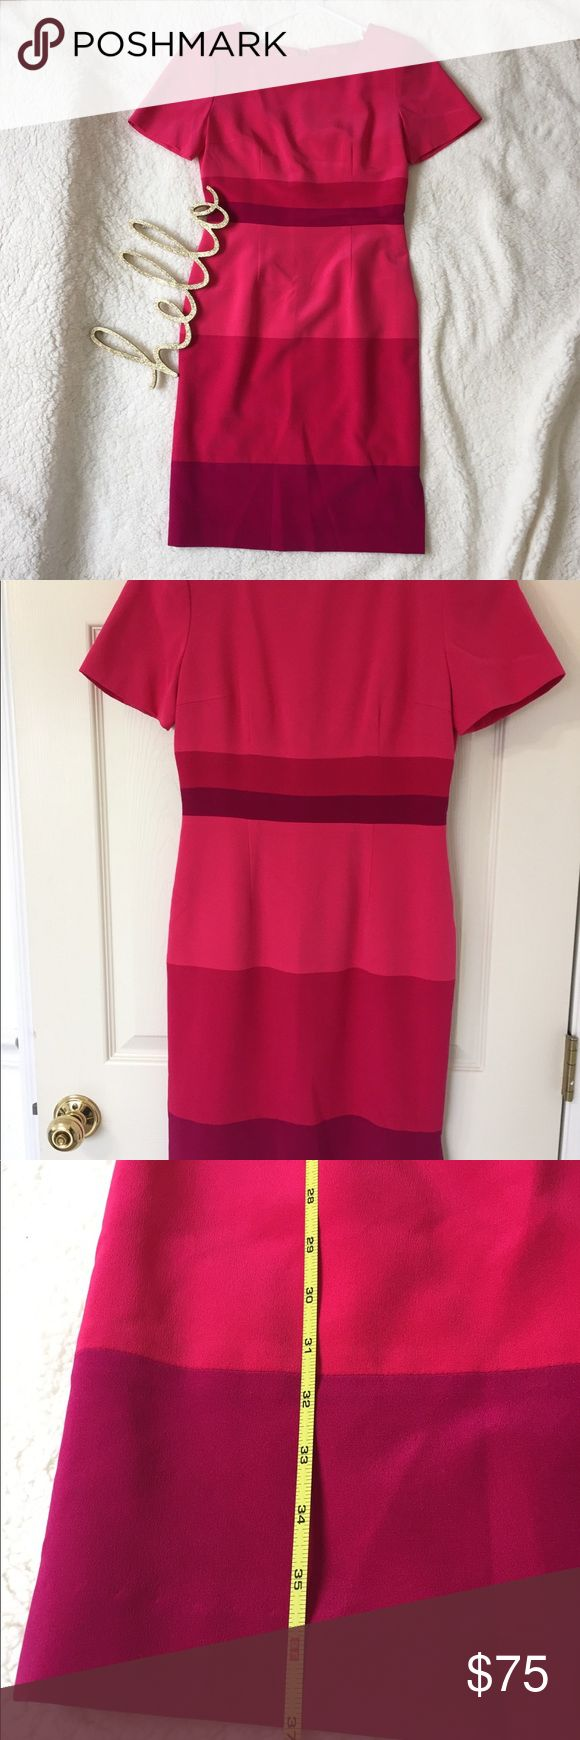 Maggy London Petites Pink Dress Super Stylish structured Maggy London Dress. It has shoulder pads and long back zipper. Very good condition except tiny thread pop up in the back of the Dress. Maggy London Dresses